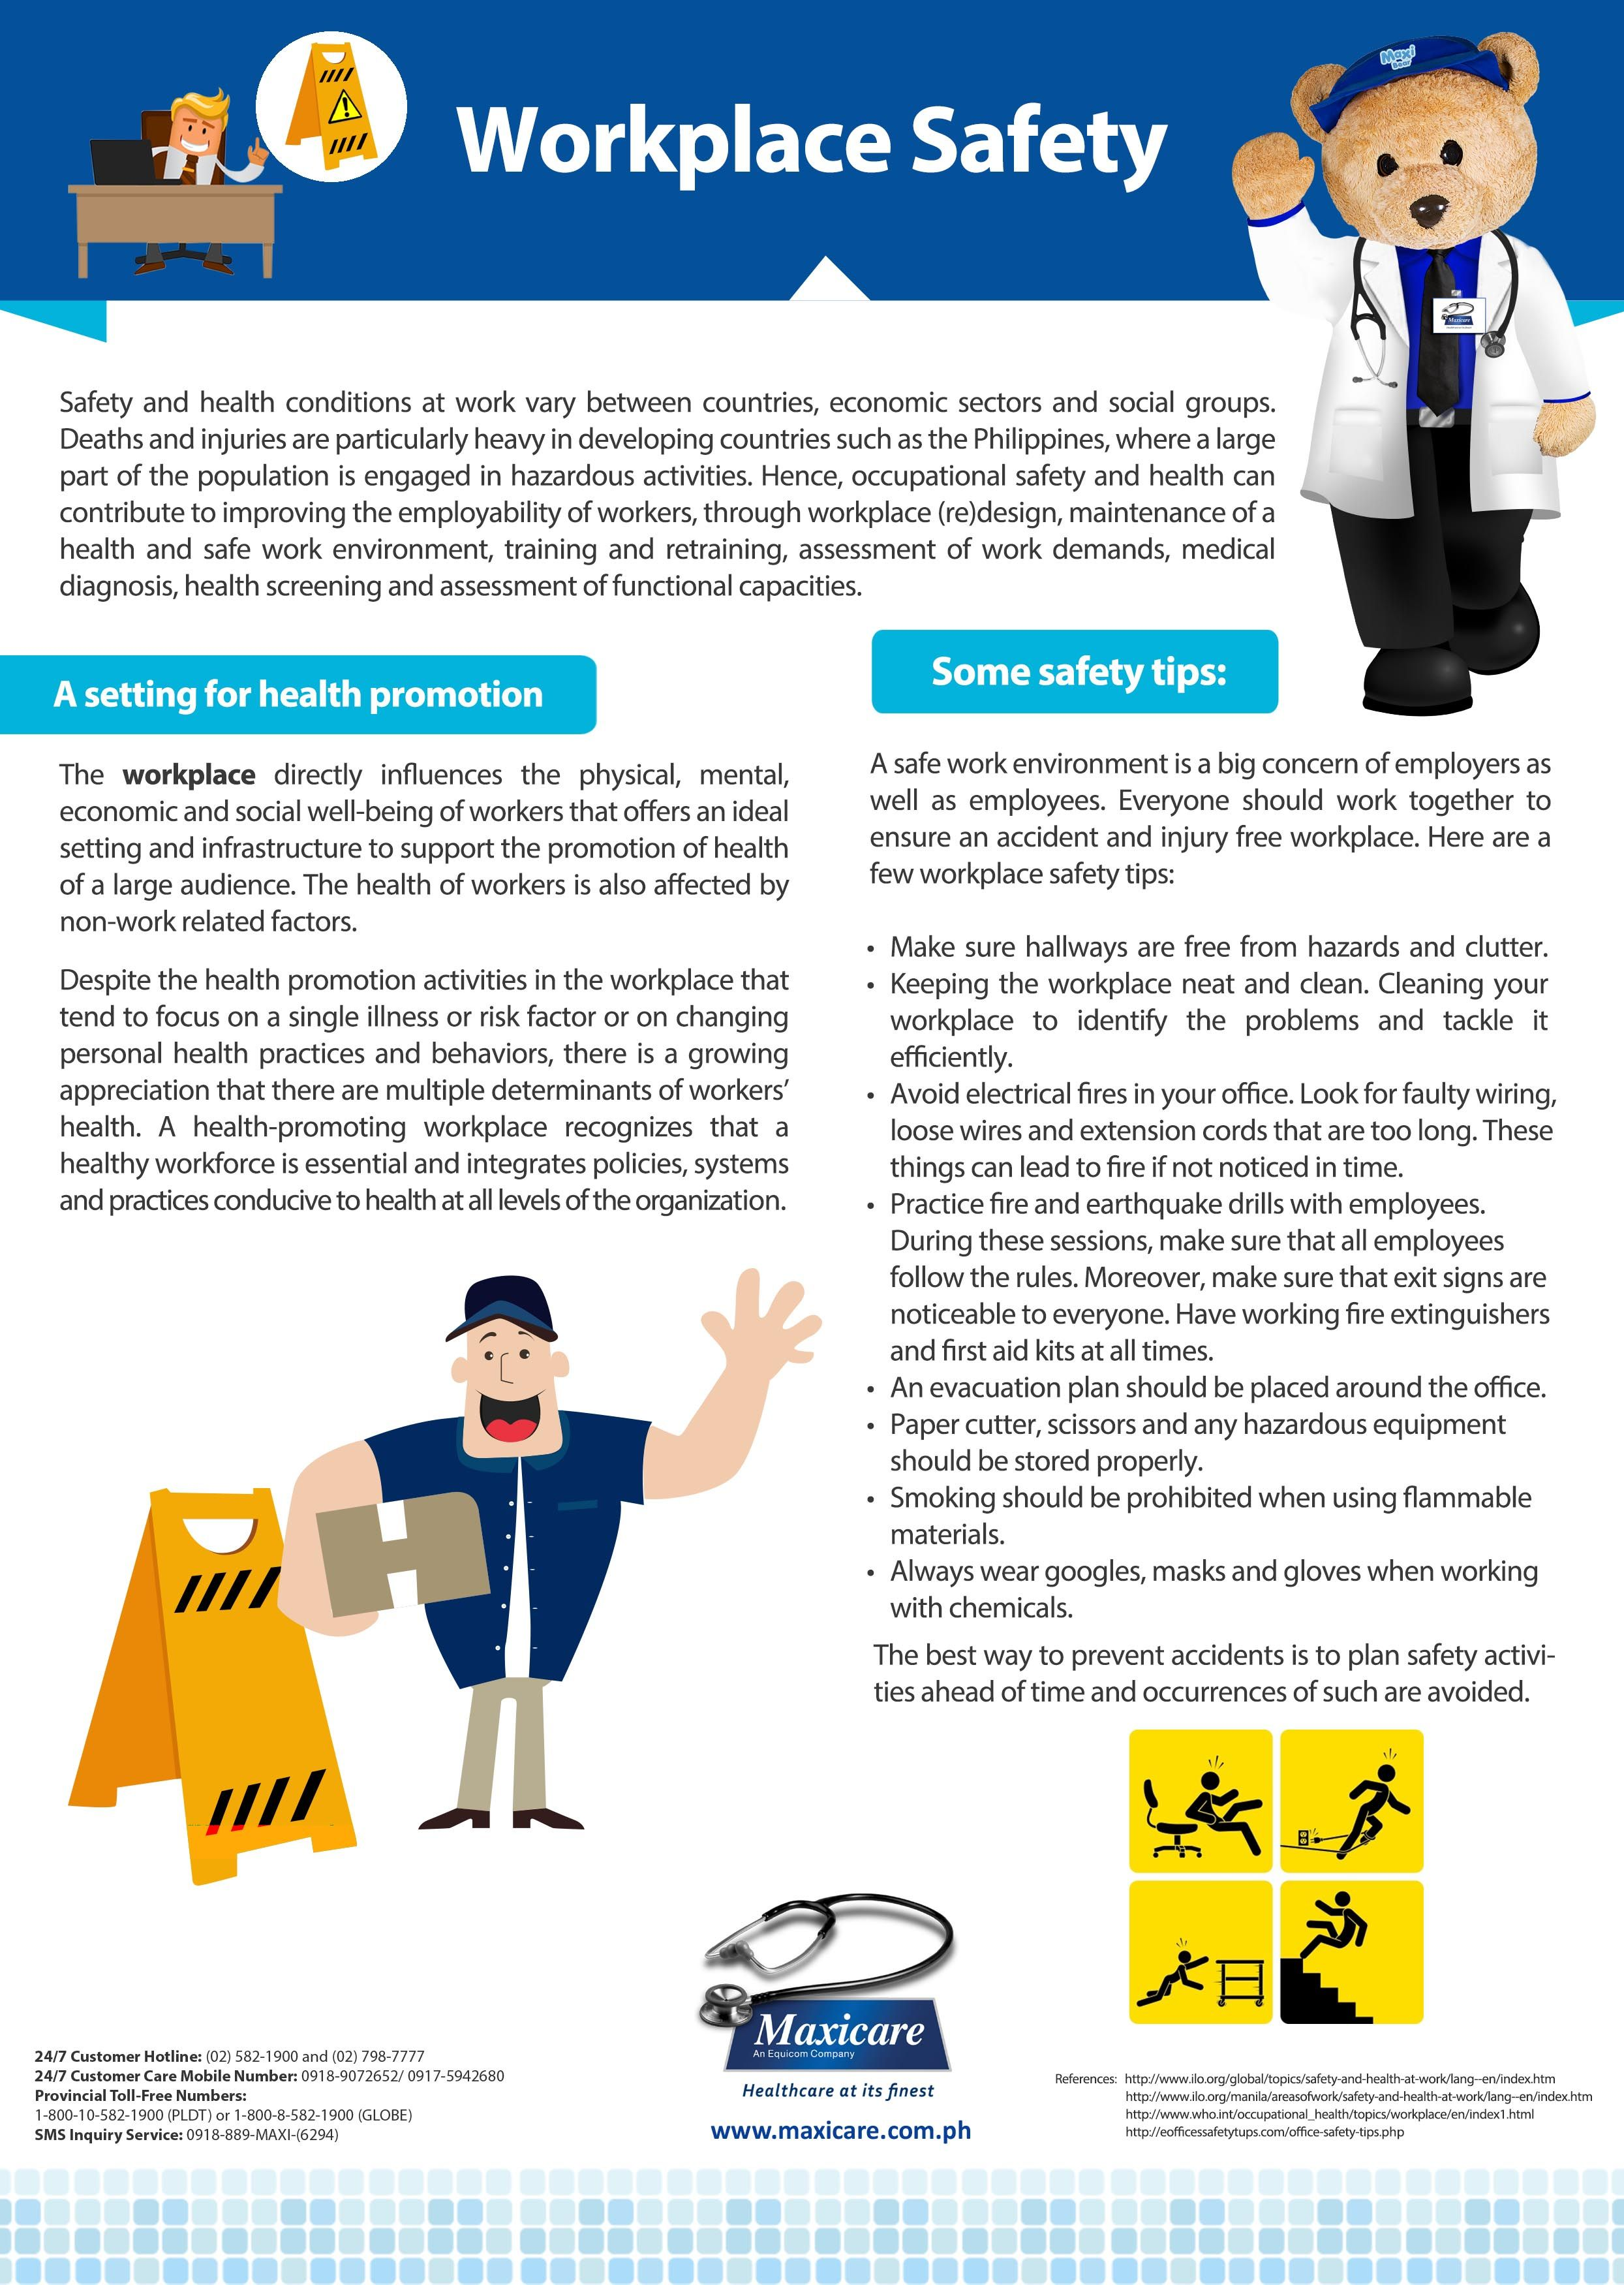 Workplace Safety Maxicare Infographic Workplace safety